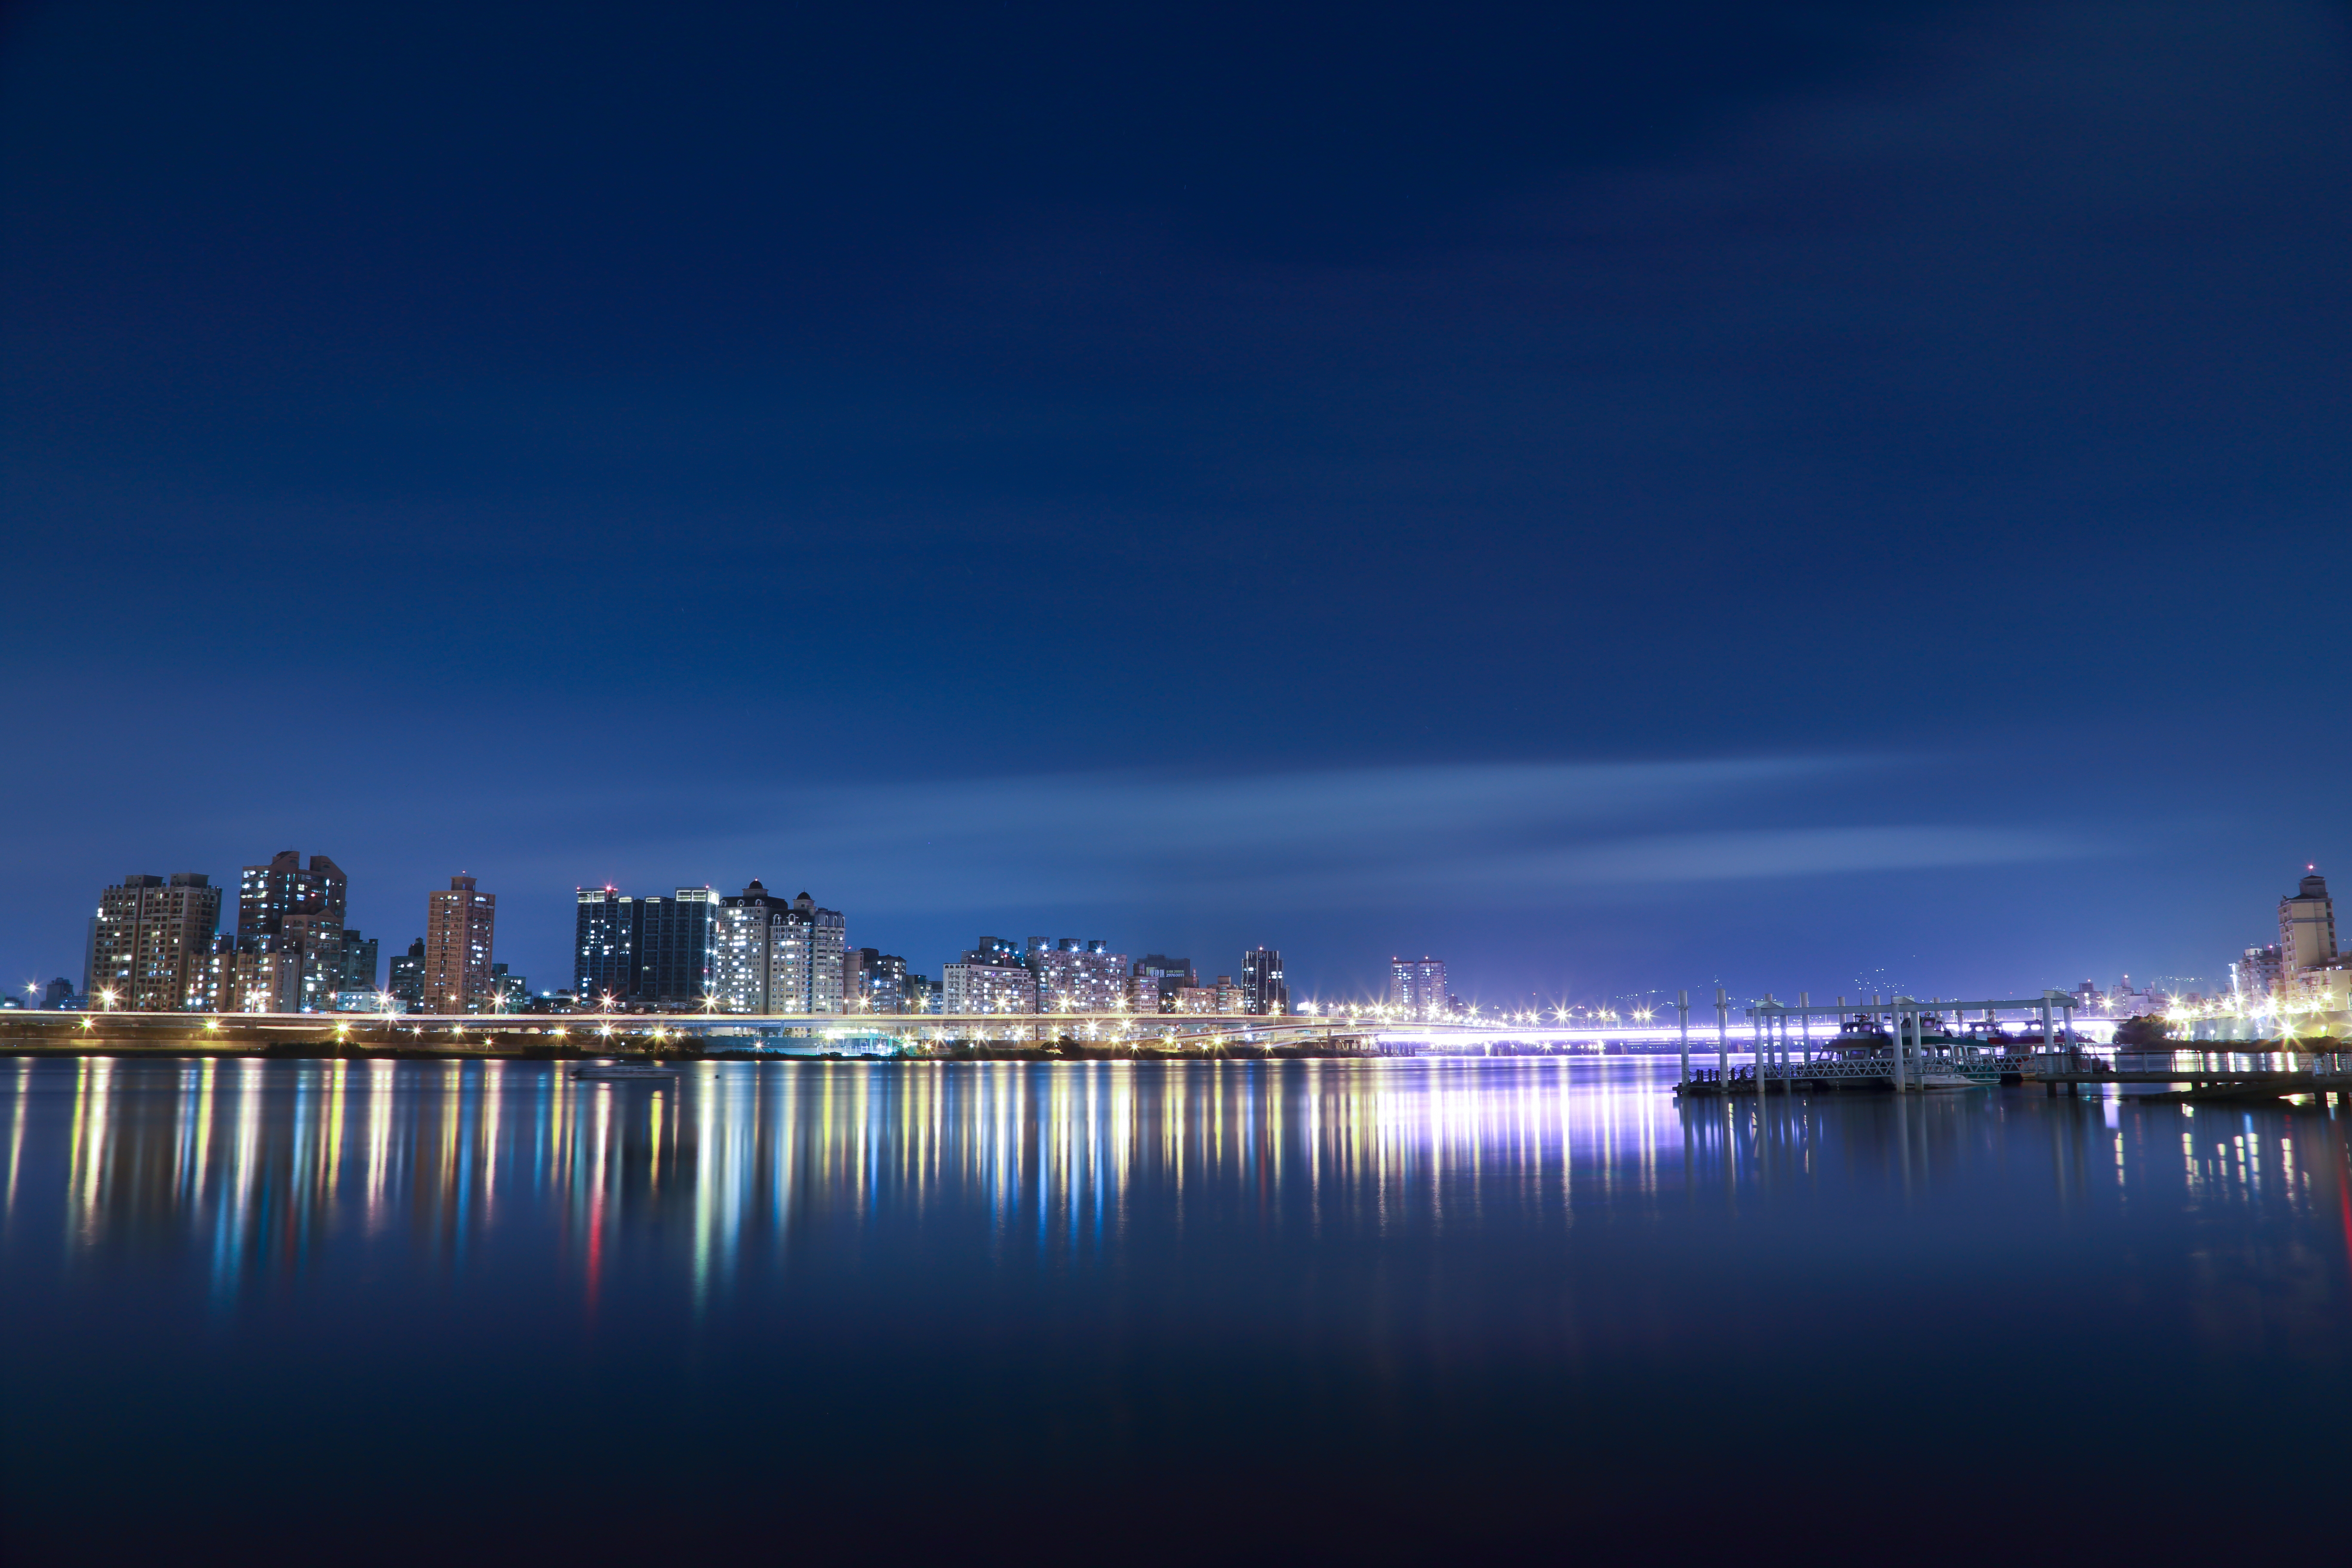 Colorful City Lights Reflected on Water, Background, Blue background, City, City lights, HQ Photo